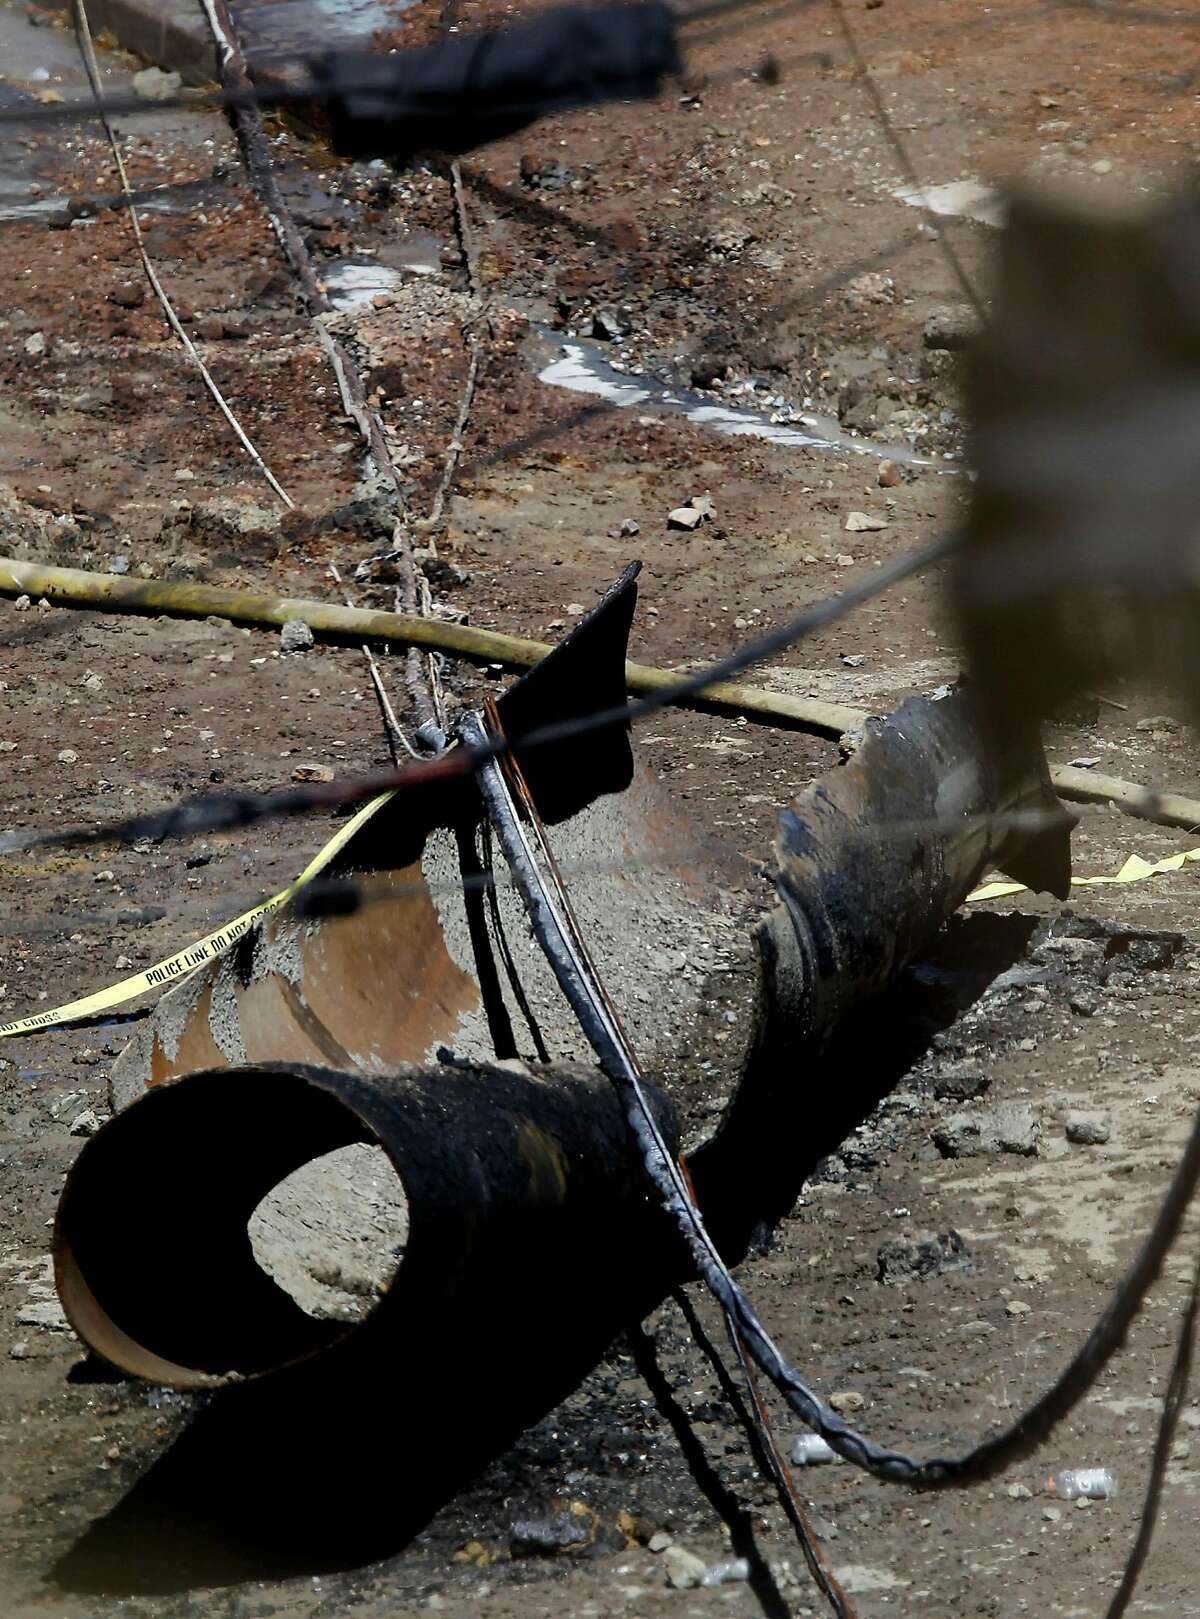 A piece of the large high pressure natural gas line, lies in the middle of the street covered with police tape, near the blast site on Friday Sept. 10, 2010, in which an explosion and fire leveled the surrounding neighborhood the night before in San Bruno, Calif.